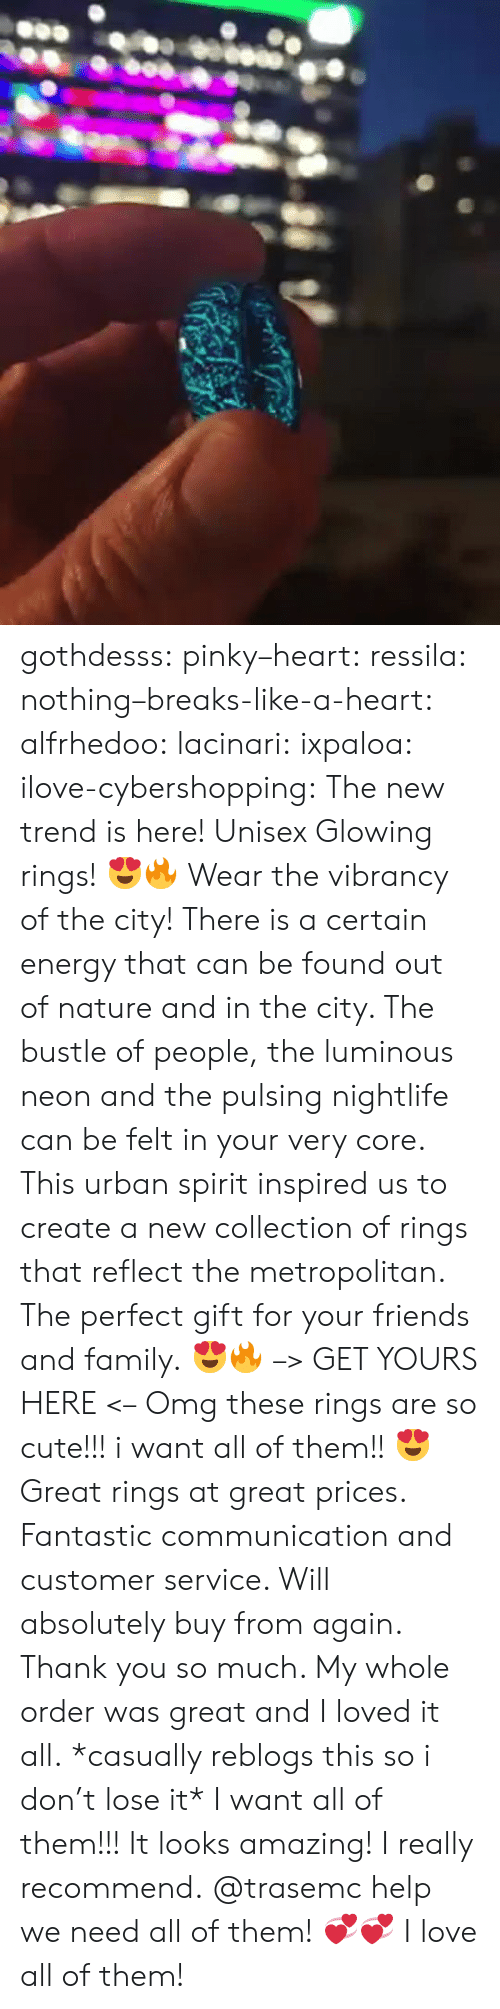 core: gothdesss:  pinky–heart: ressila:  nothing–breaks-like-a-heart:  alfrhedoo:  lacinari:  ixpaloa:  ilove-cybershopping:  The new trend is here! Unisex Glowing rings! 😍🔥 Wear the vibrancy of the city! There is a certain energy that can be found out of nature and in the city. The bustle of people, the luminous neon and the pulsing nightlife can be felt in your very core. This urban spirit inspired us to create a new collection of rings that reflect the metropolitan. The perfect gift for your friends and family. 😍🔥 –> GET YOURS HERE <–  Omg these rings are so cute!!! i want all of them!! 😍  Great rings at great prices. Fantastic communication and customer service. Will absolutely buy from again. Thank you so much. My whole order was great and I loved it all.  *casually reblogs this so i don't lose it*  I want all of them!!!  It looks amazing! I really recommend.  @trasemc help we need all of them! 💞💞  I love all of them!